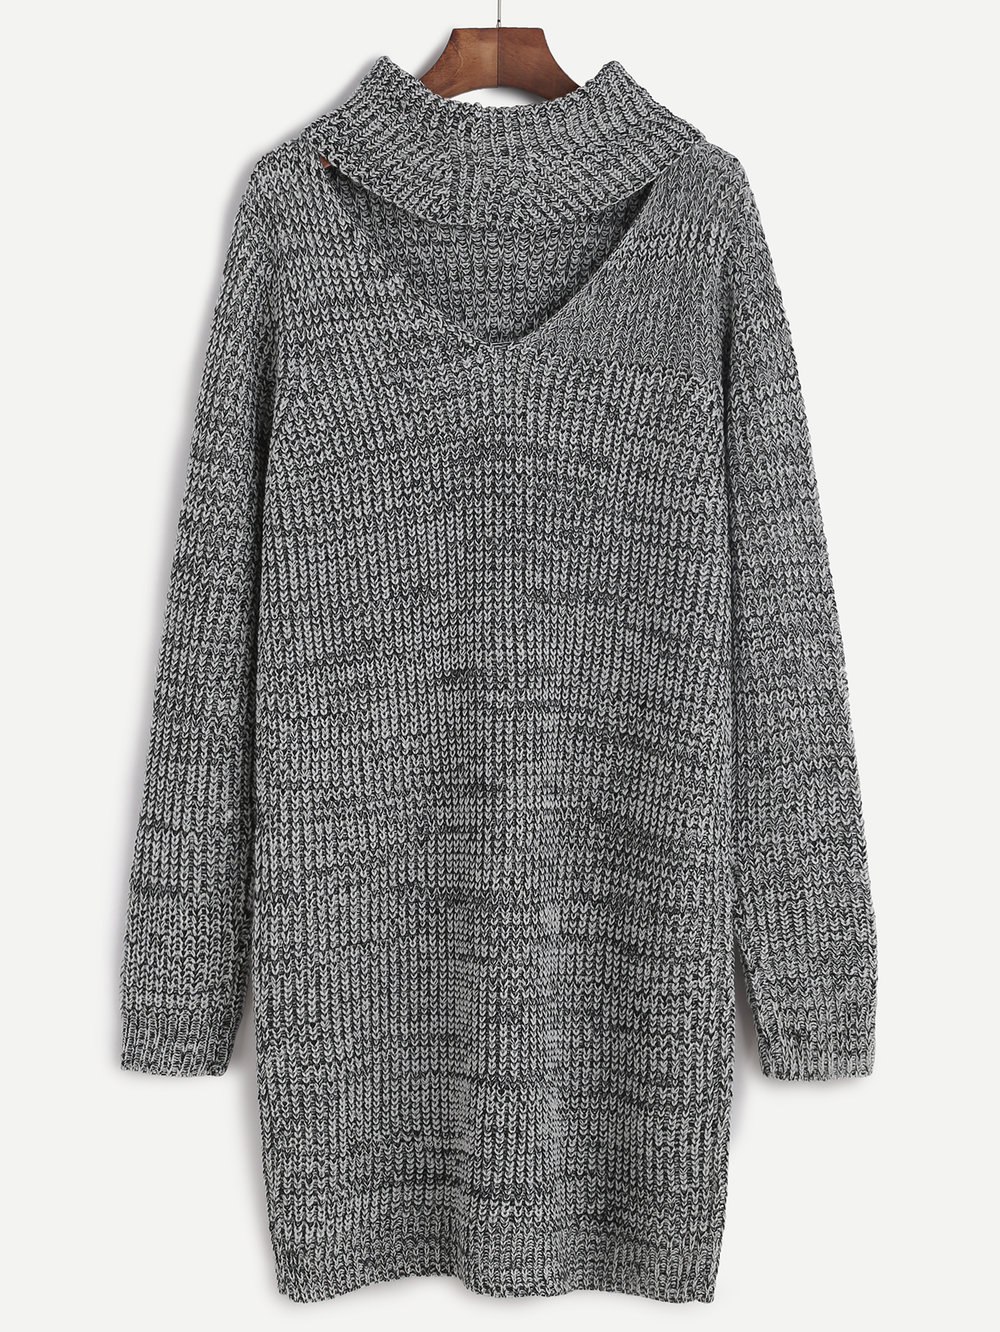 SheIn Grey Knit Cutout Turtleneck Dress